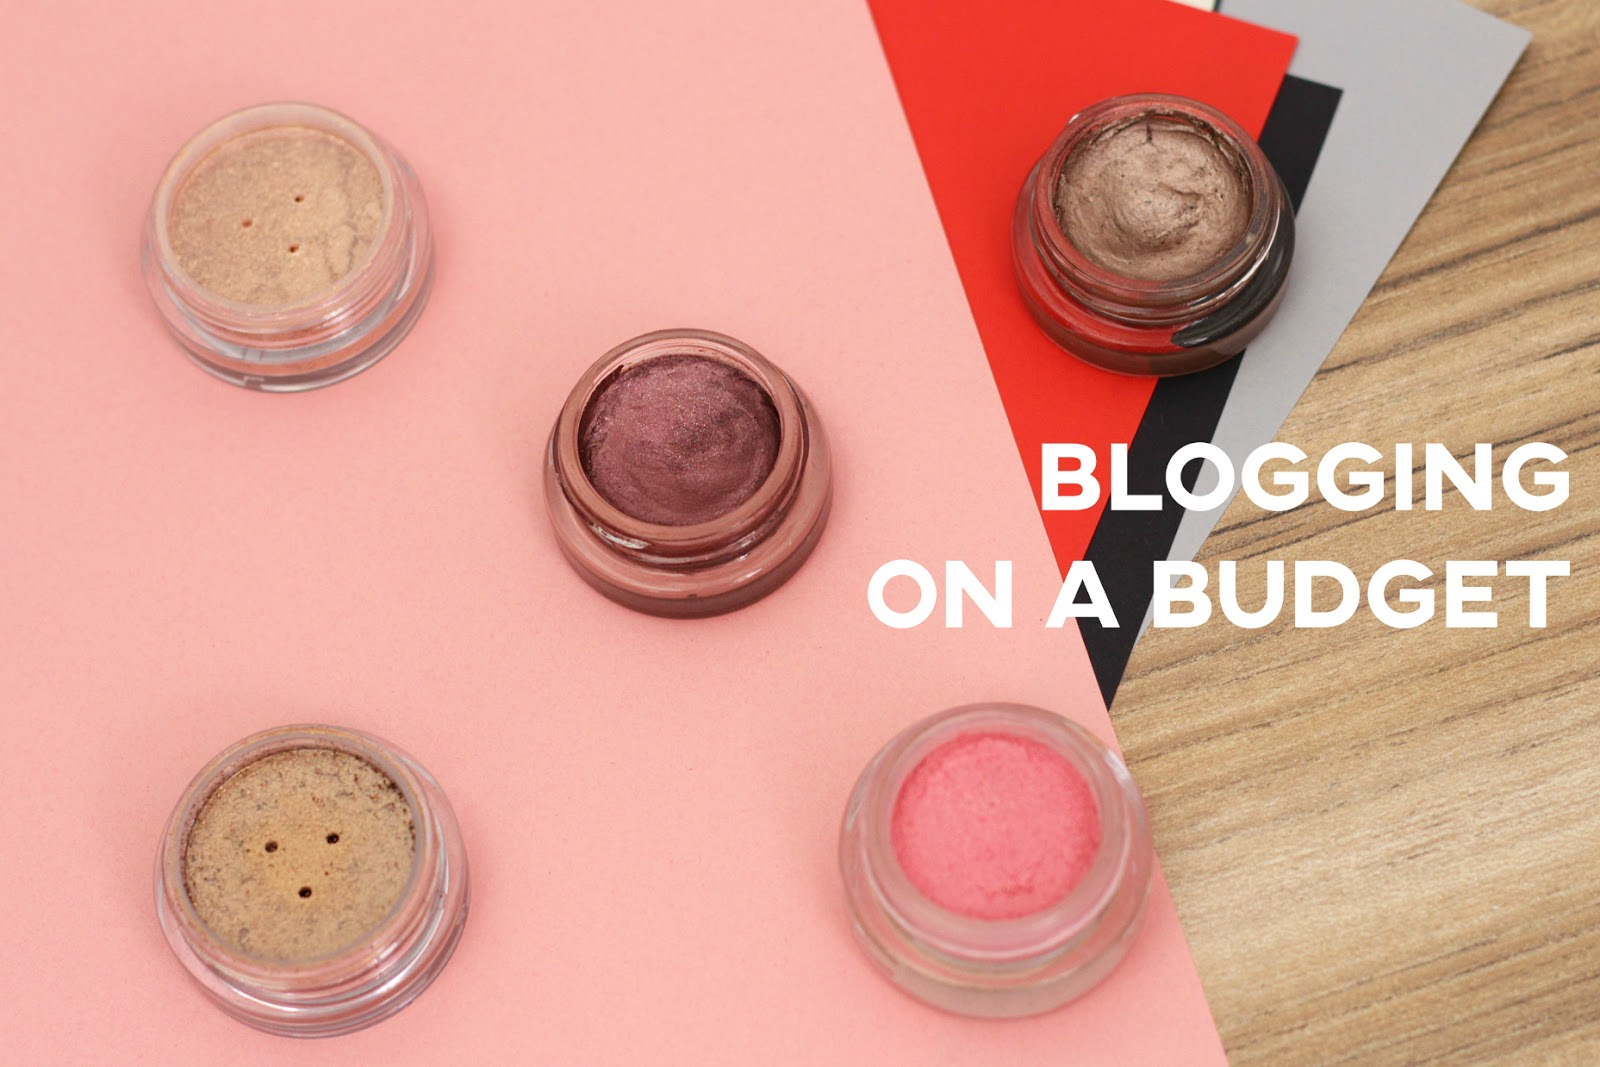 How To Blog On A Budget Tips & 10 Cheap Blog Post Ideas